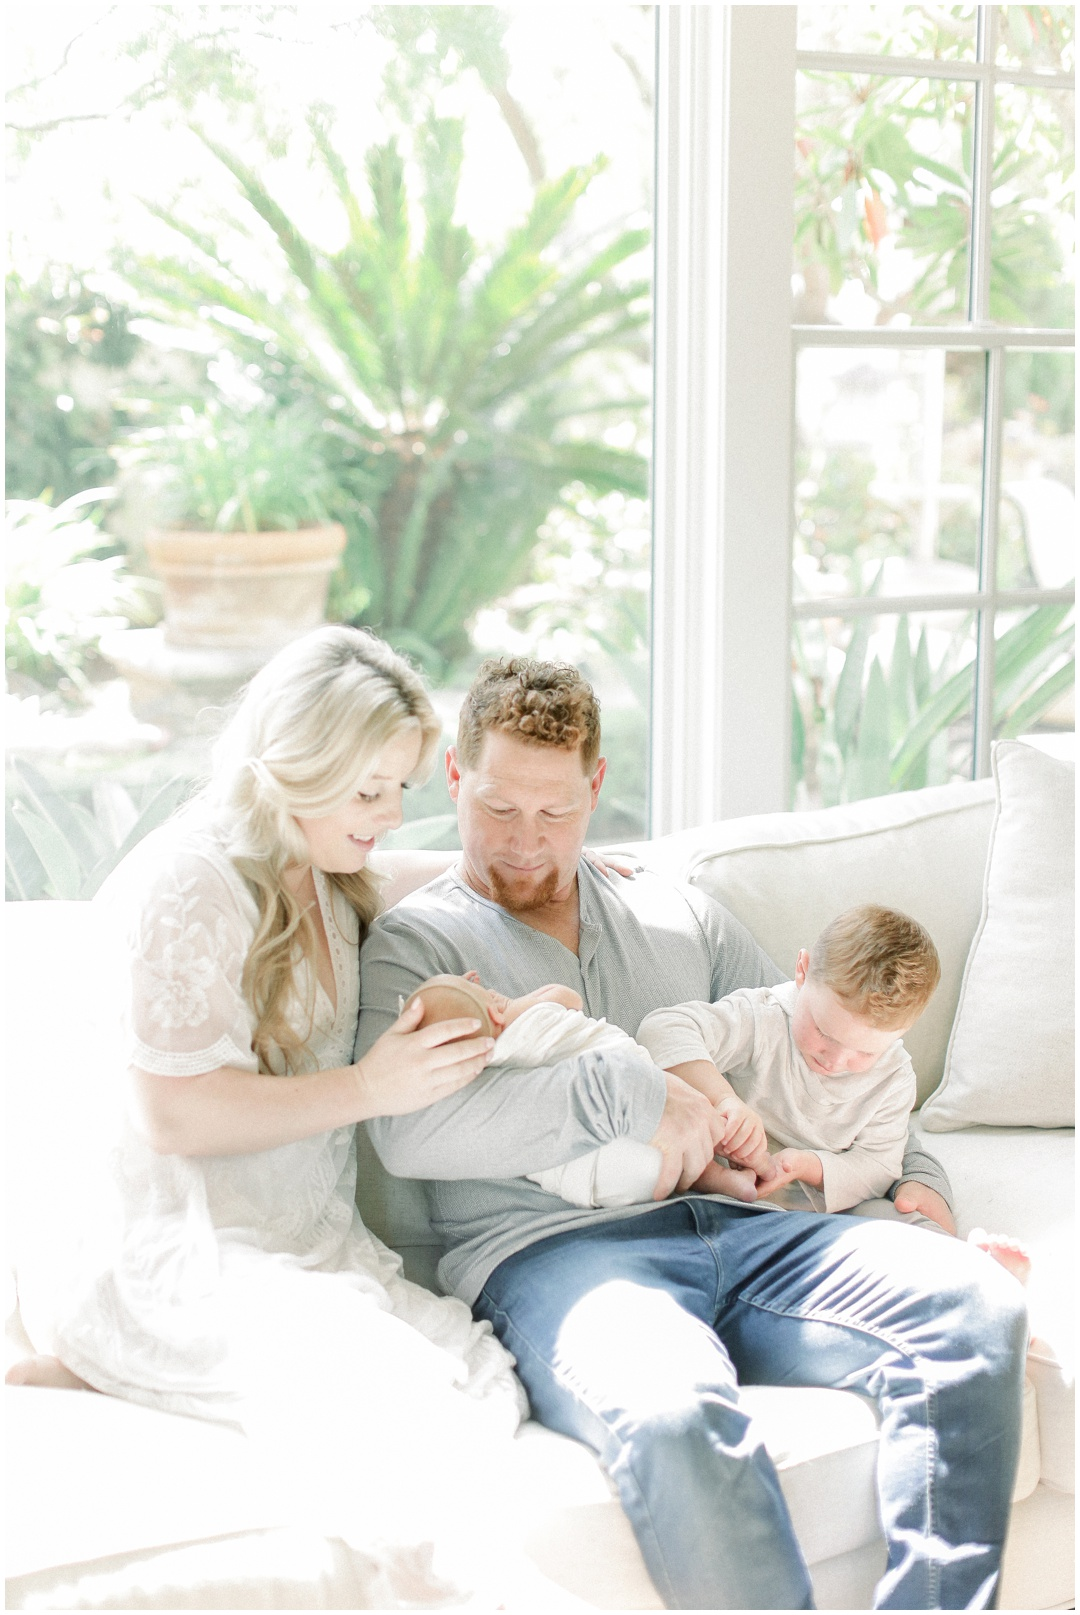 Newport_Beach_Newborn_Light_Airy_Natural_Photographer_Newport_Beach_Photographer_Orange_County_Family_Photographer_Cori_Kleckner_Photography_Newport_Beach_Photographer_newborn_kole_calhoun56_kole_calhoun_Jennifer_Calhoun_Knox_Calhoun_3767.jpg